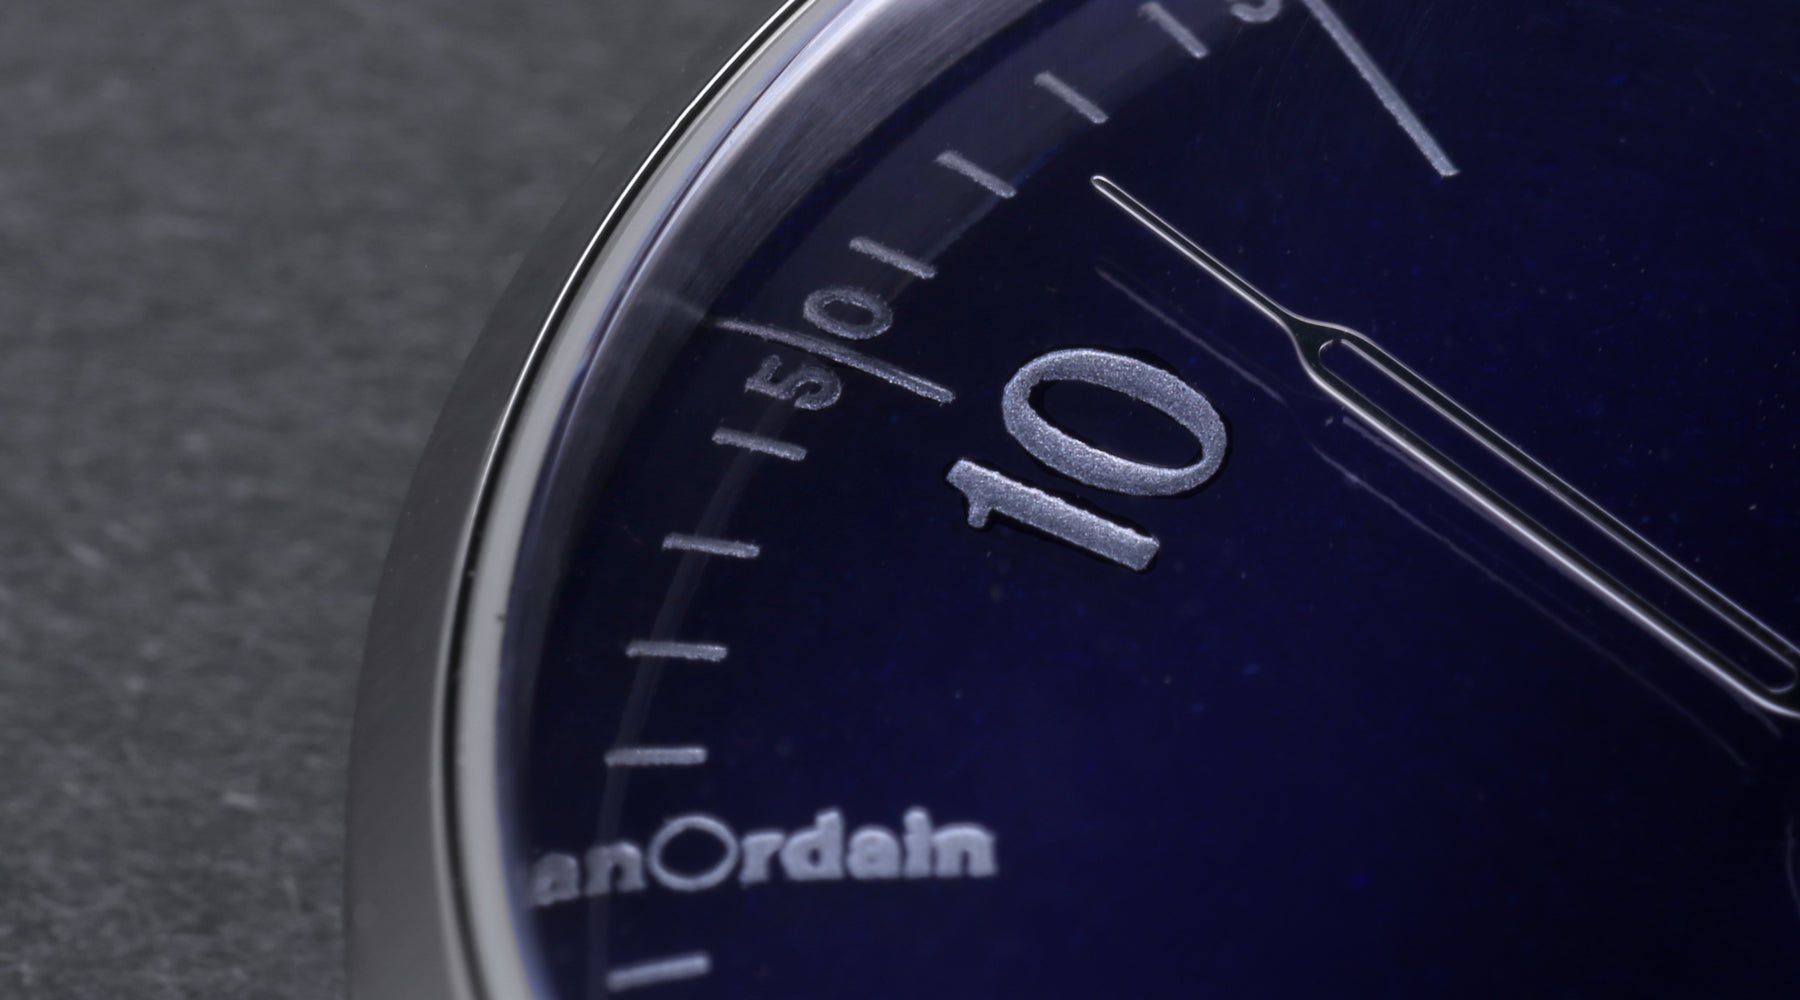 A close-up view of the translucent blue dial